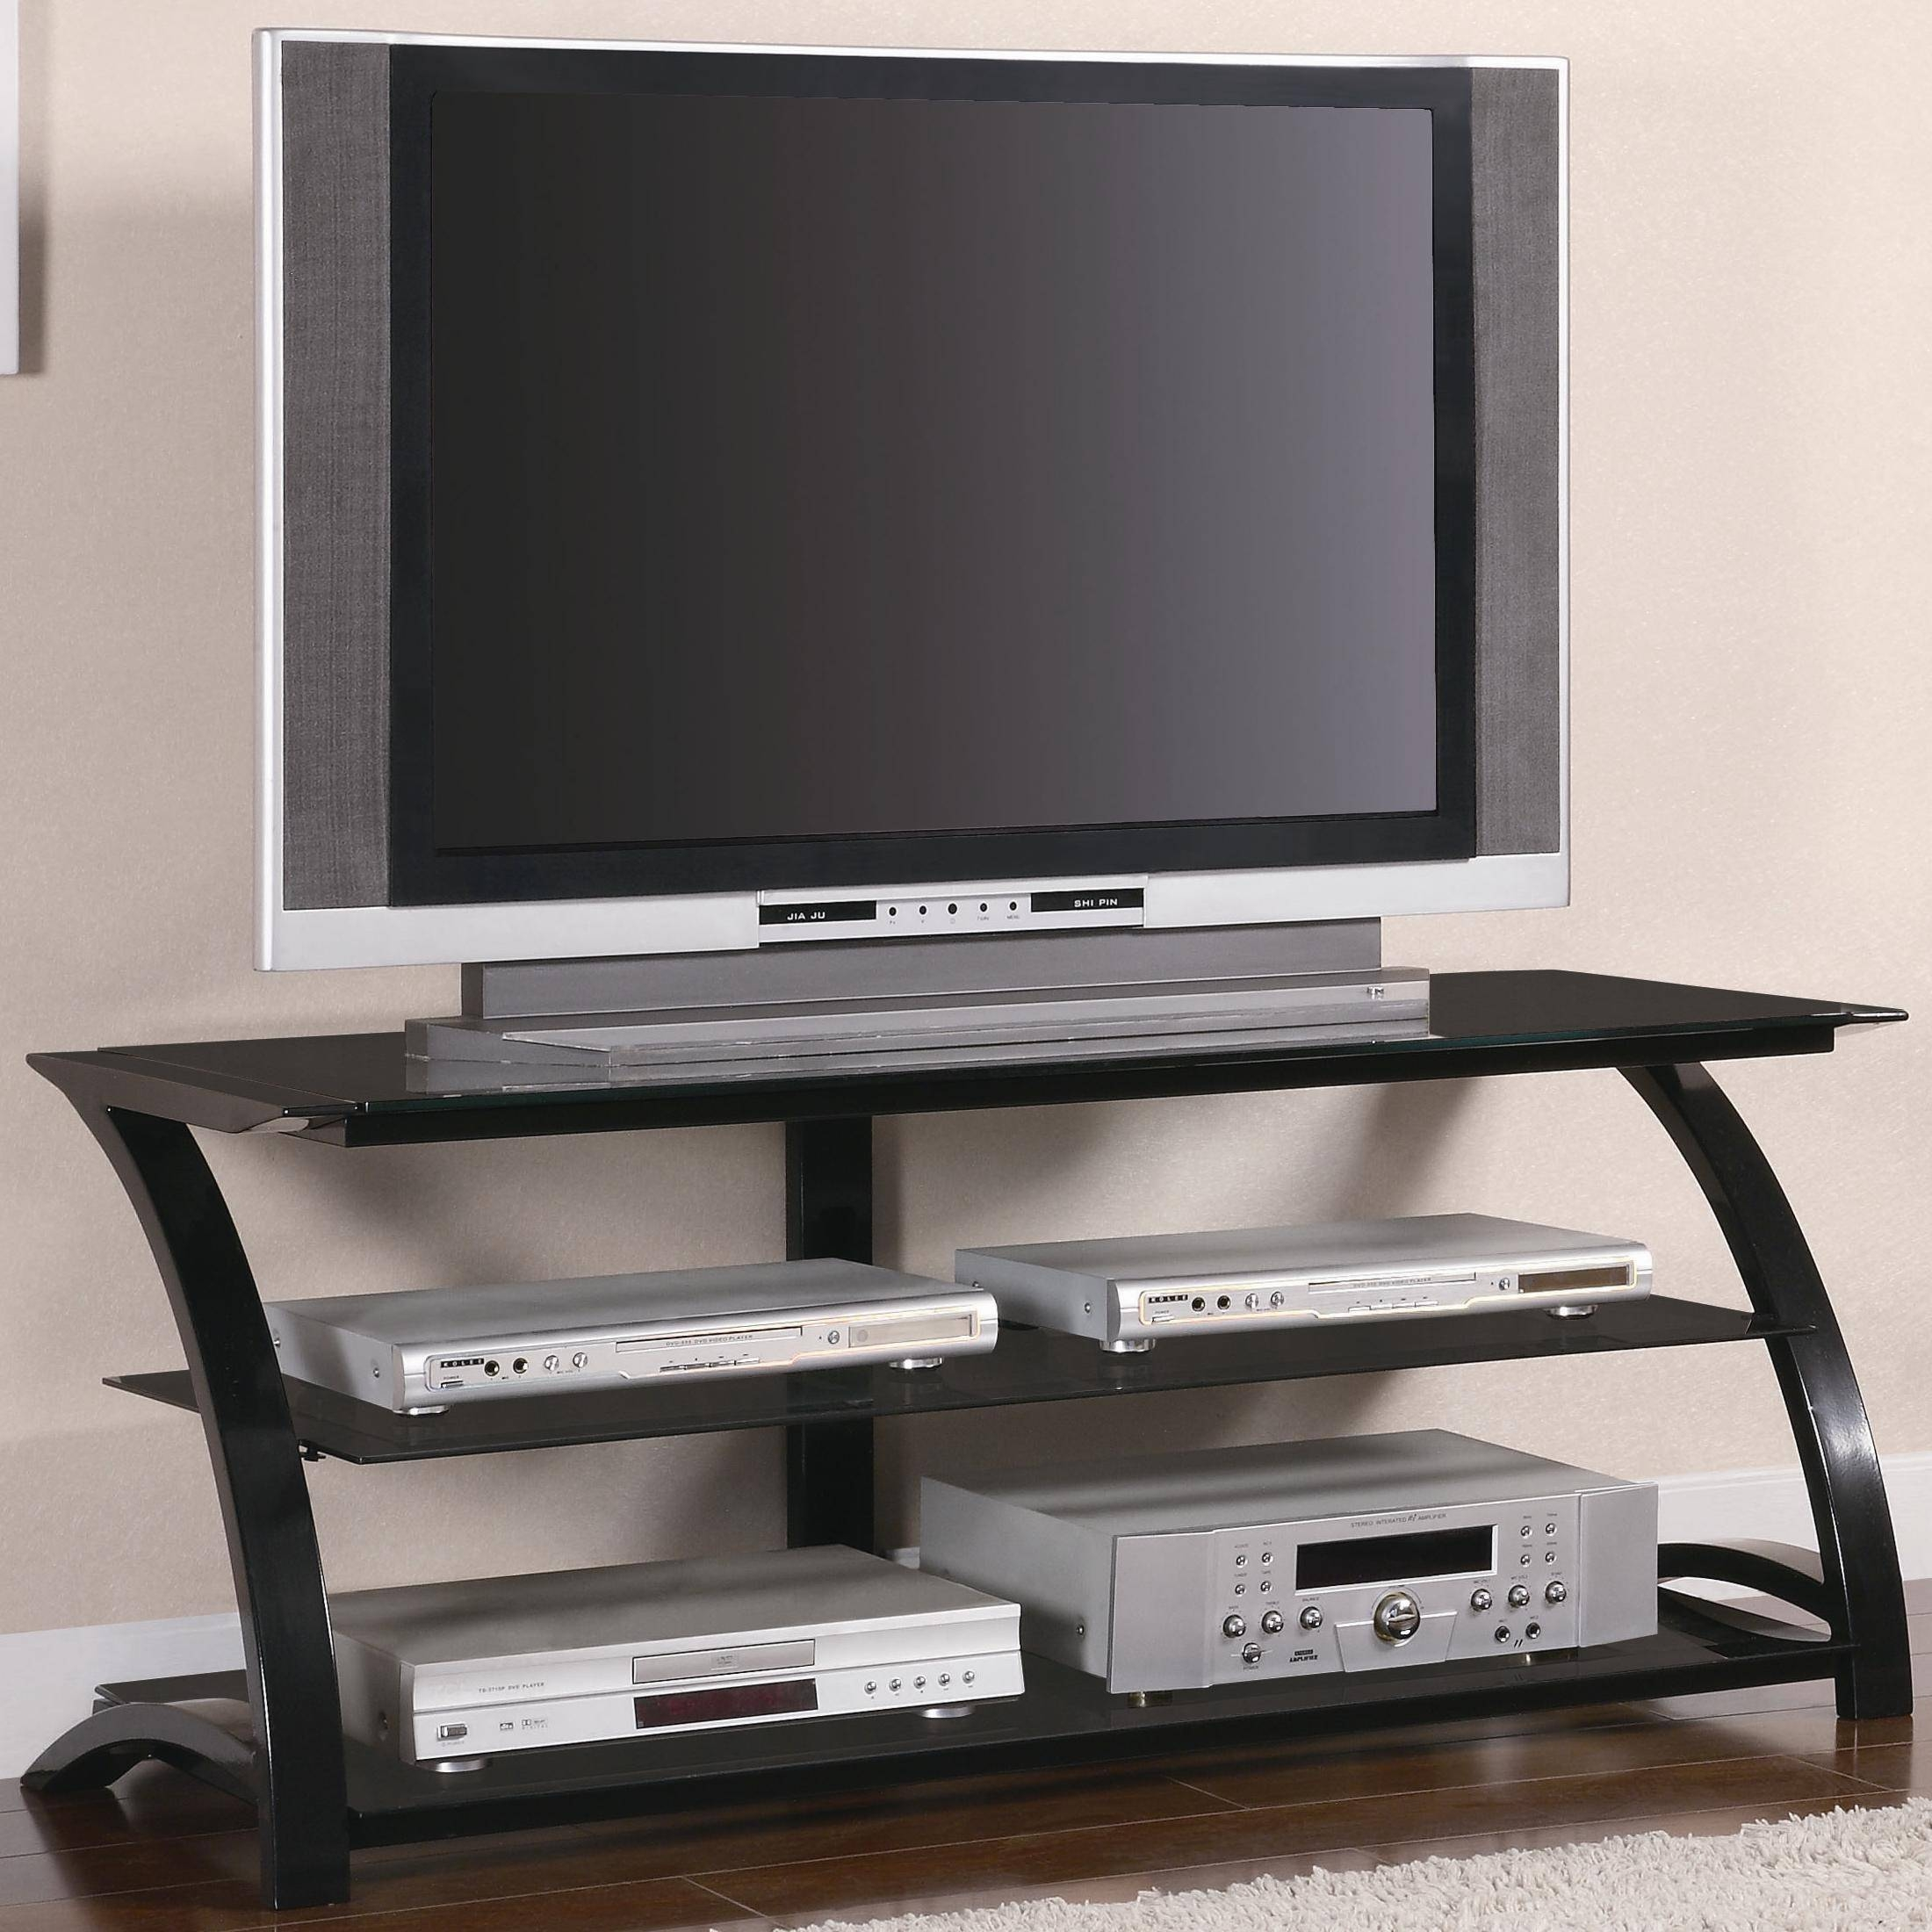 Bedroom : Tv Stand For 50 Inch Tv 65 Inch Tv Stand Black Tv In Unique Corner Tv Stands (View 5 of 15)